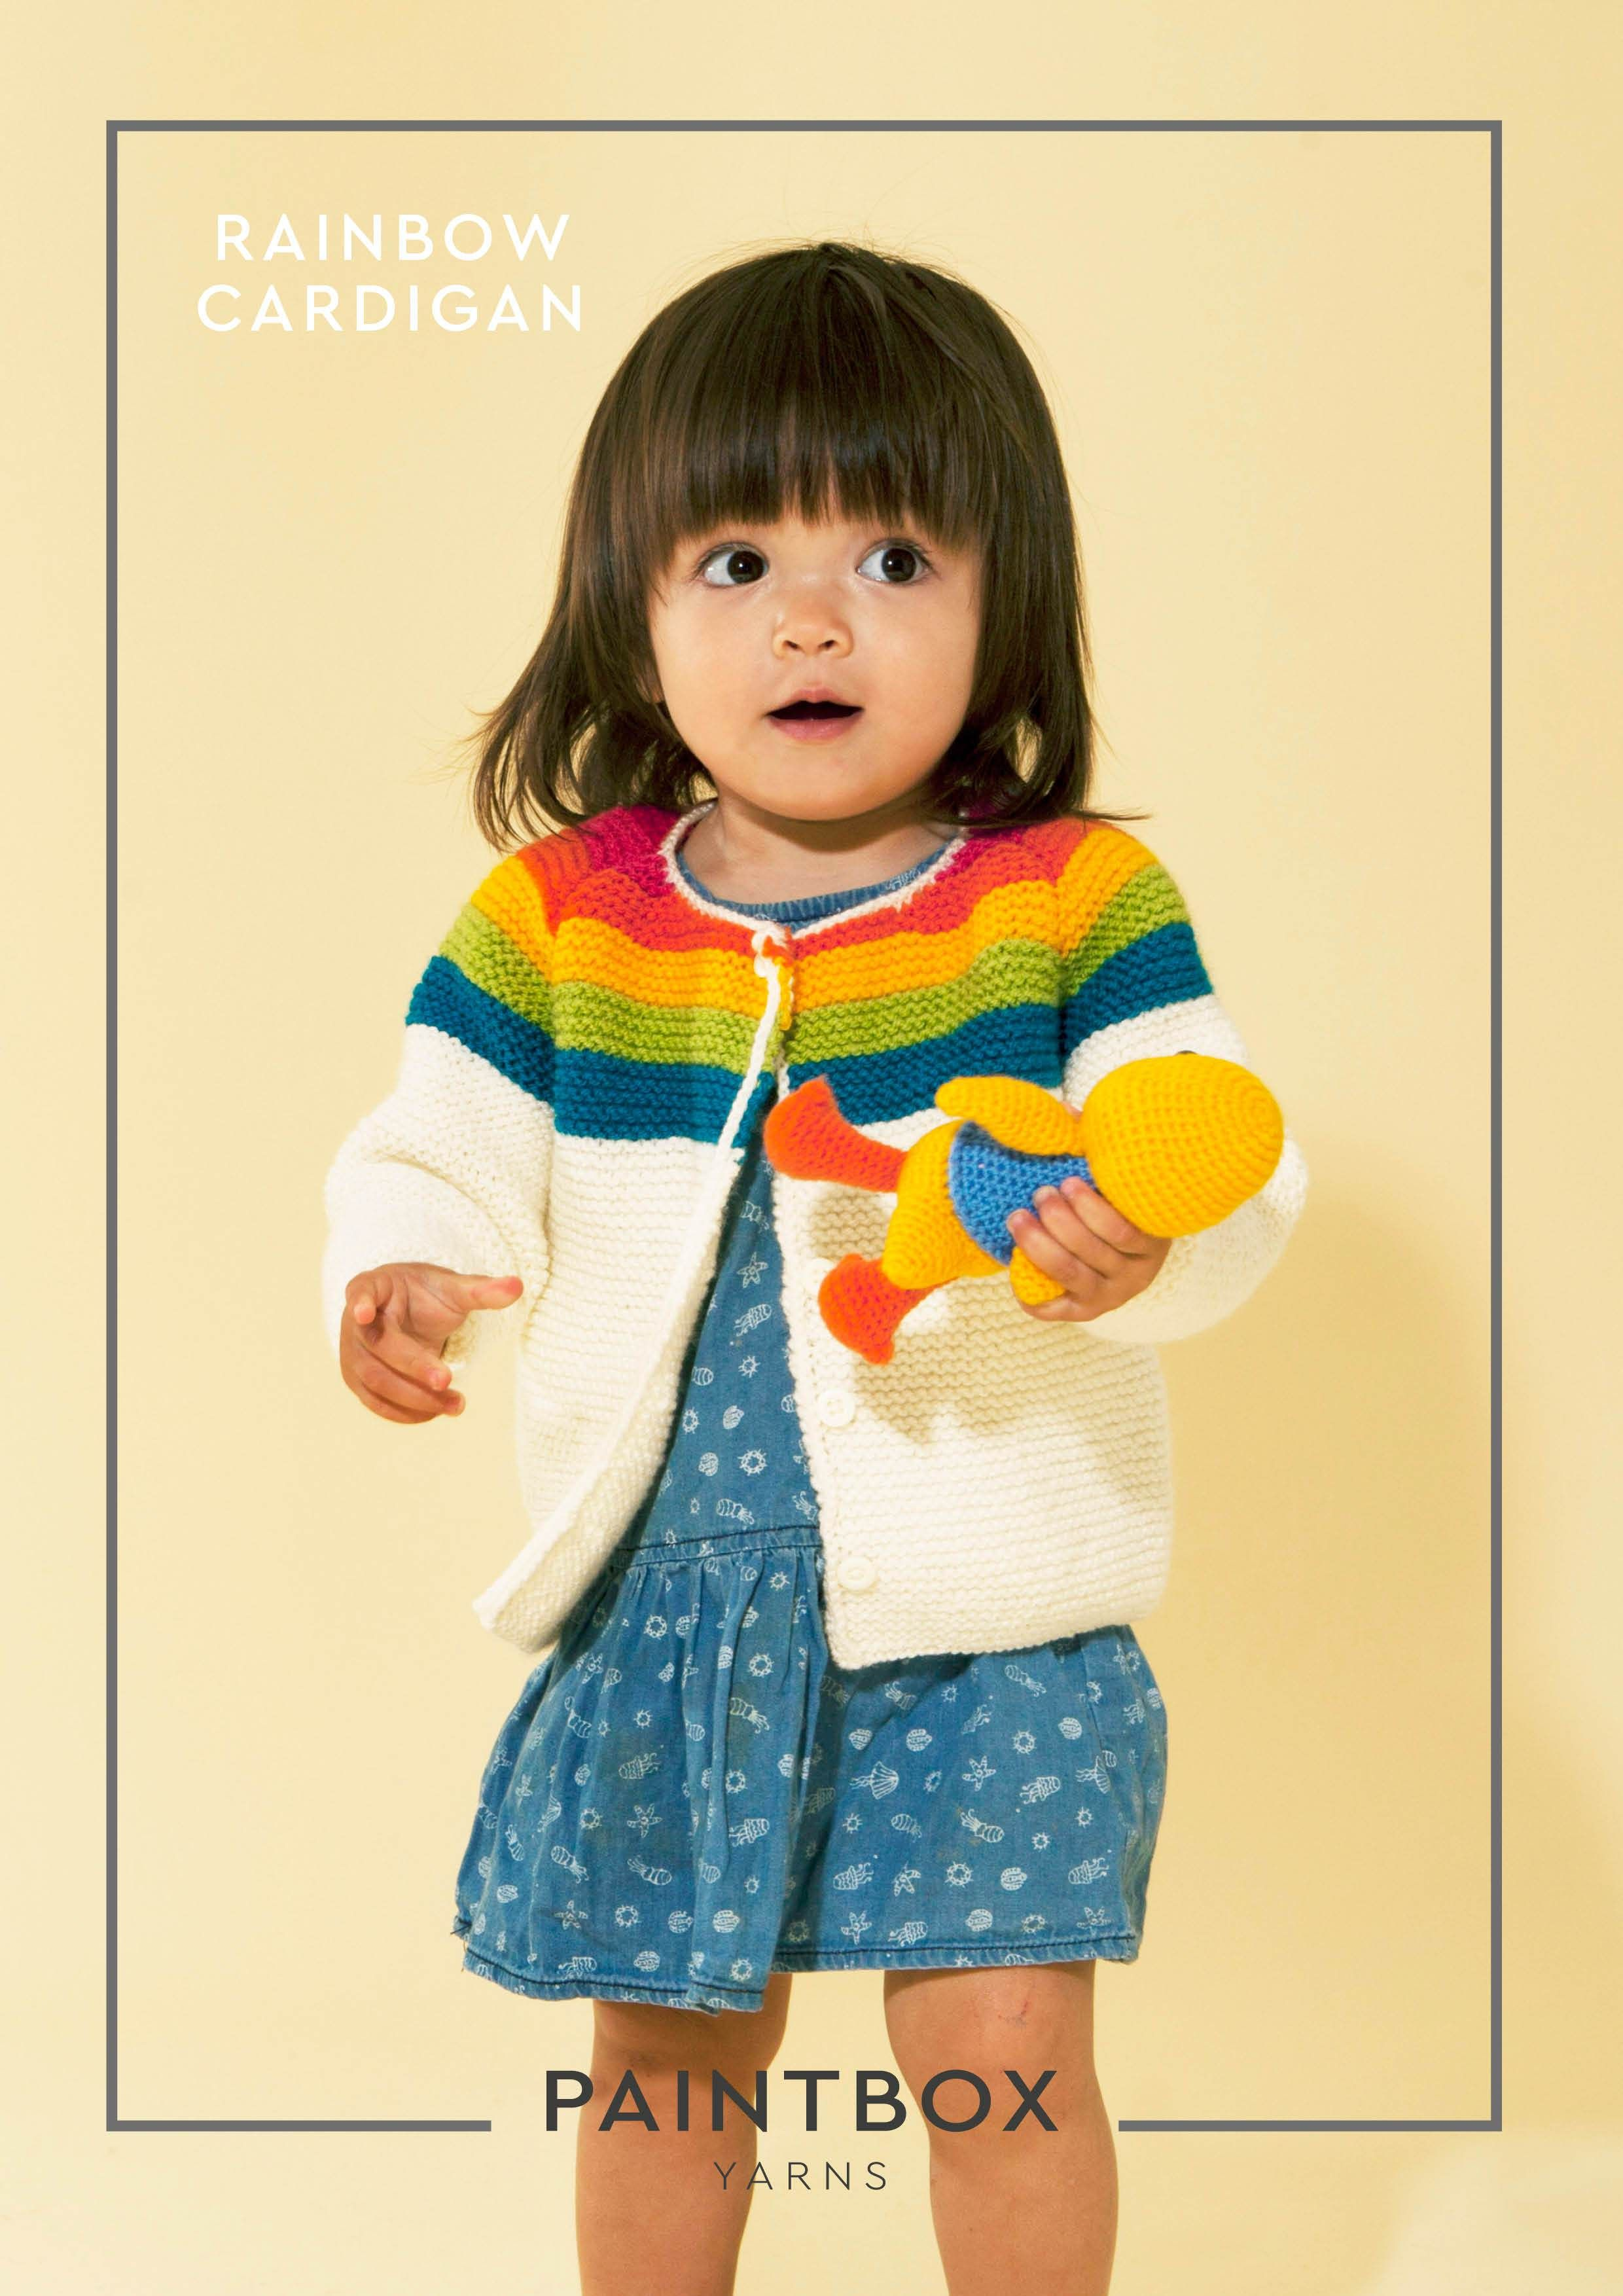 Paintbox yarns free knitting pattern adorable kids jumper in paintbox yarns free knitting pattern adorable kids jumper in rainbow colors bankloansurffo Gallery